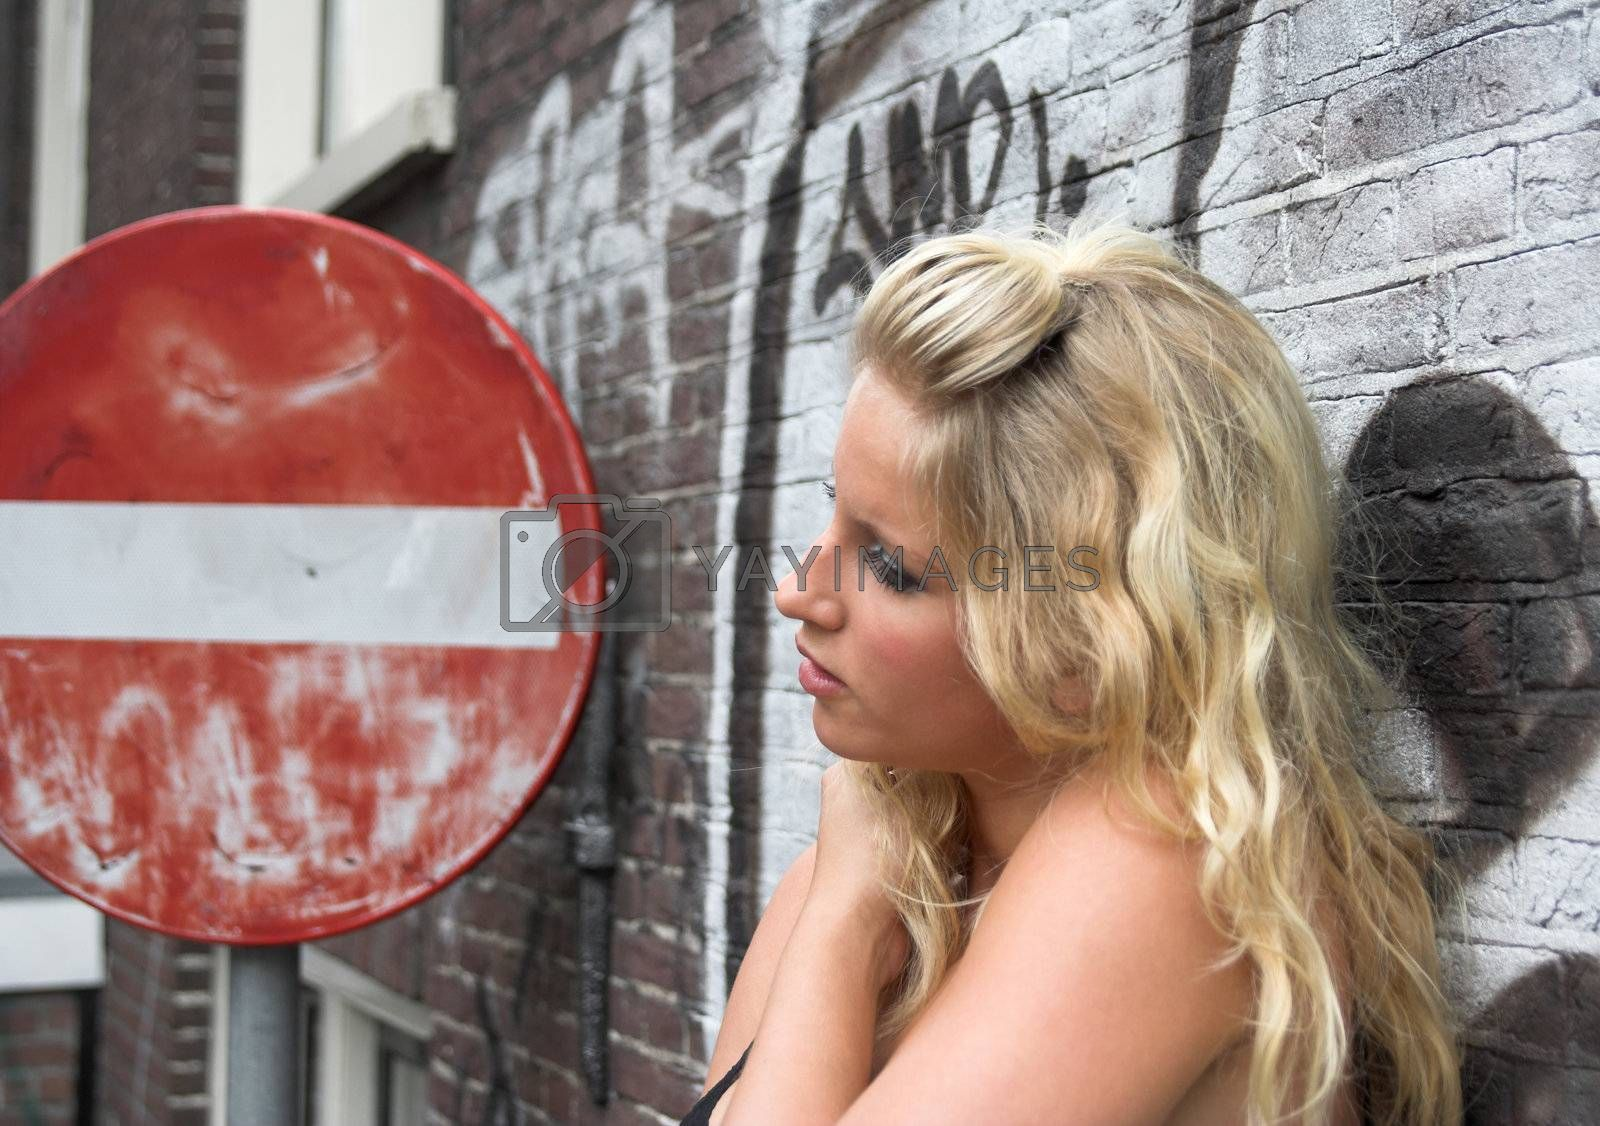 Attractive blonde against a brick wall with graffiti, standing next to a red road sign